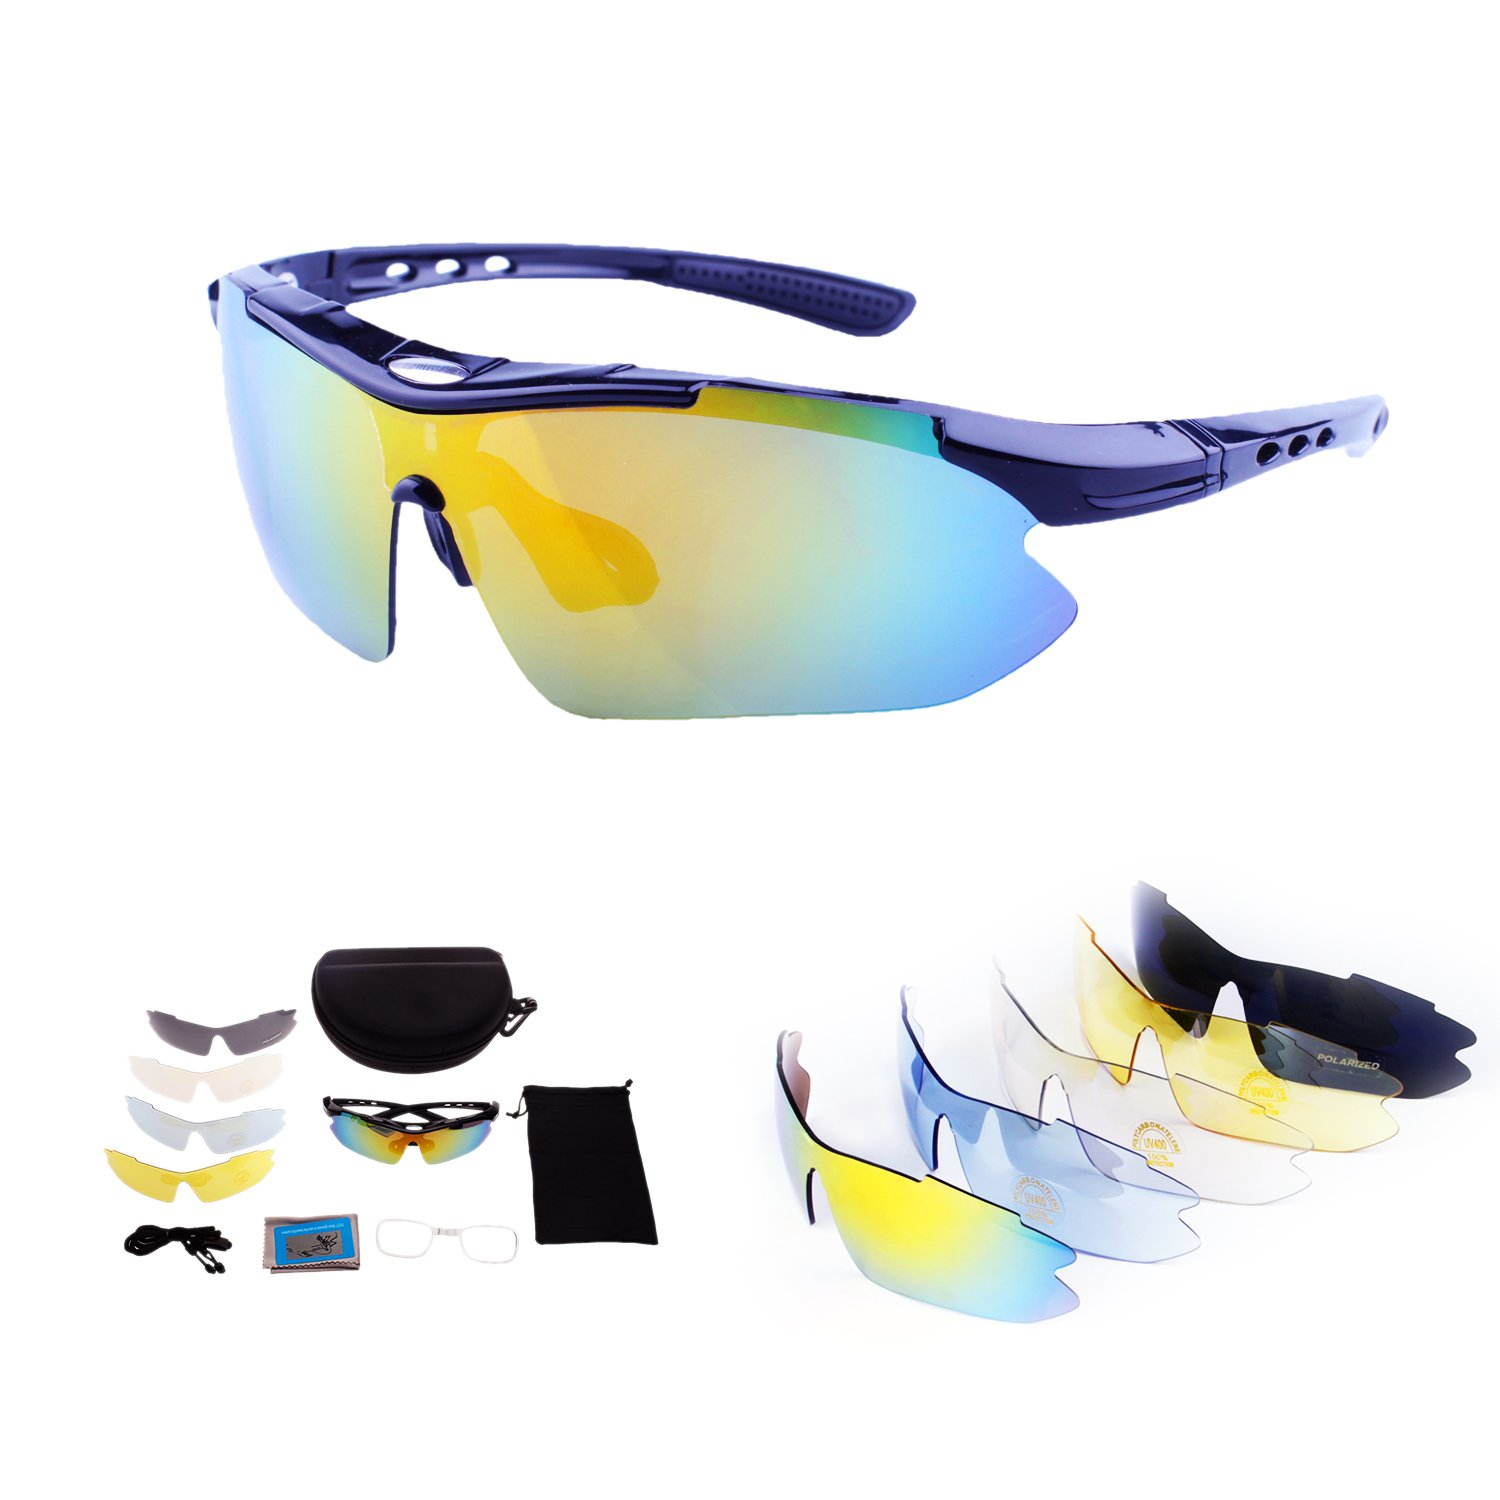 Polarized Sport Sunglasses With 6 Interchangeable Lenses